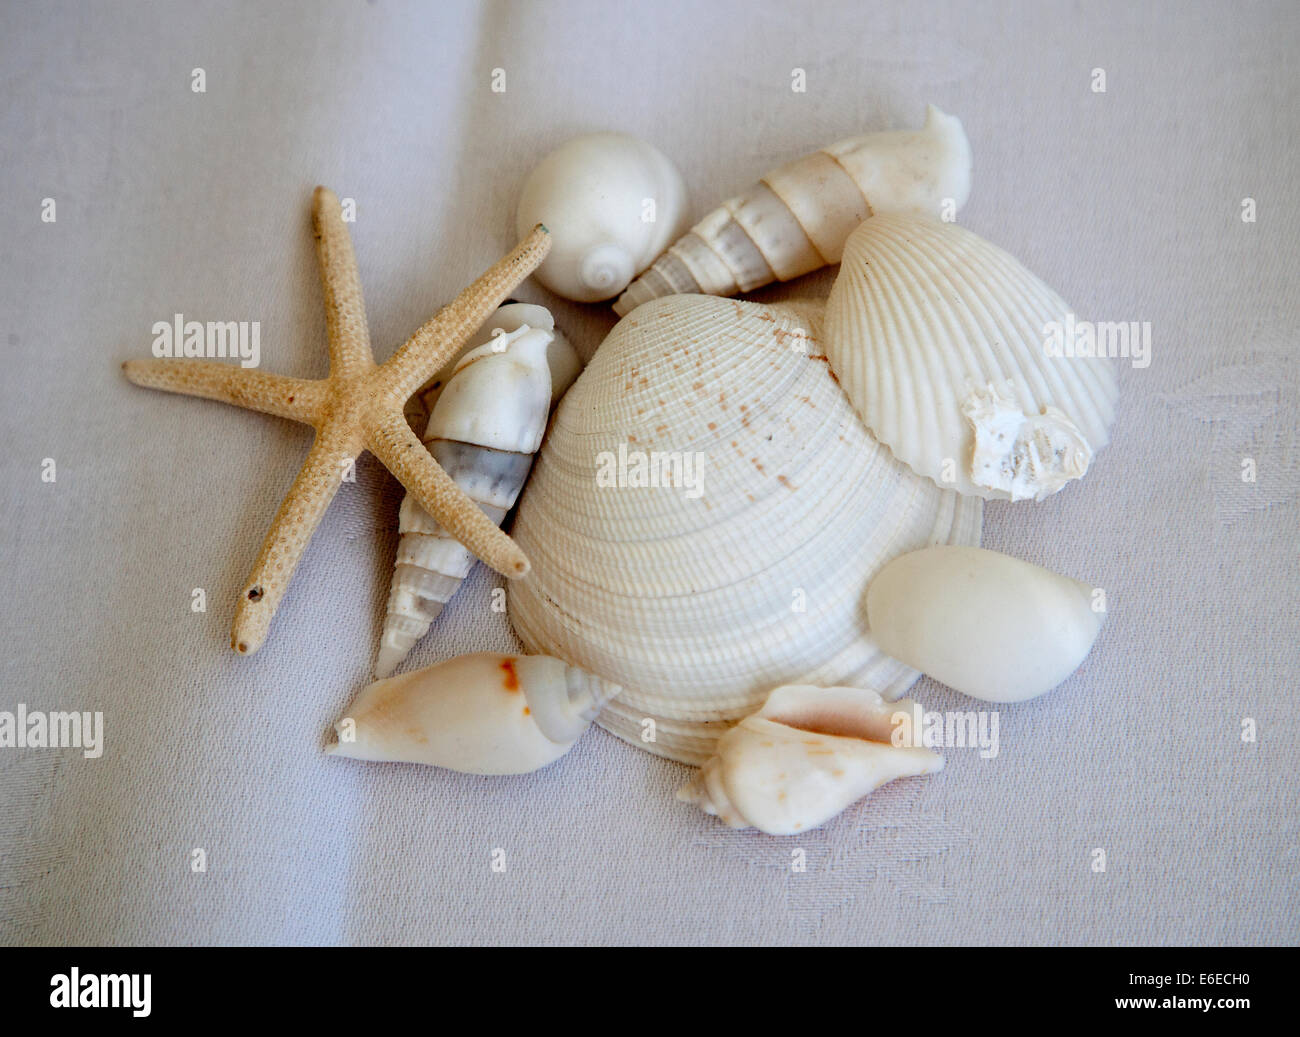 Pile of sea shells on a white table - Stock Image